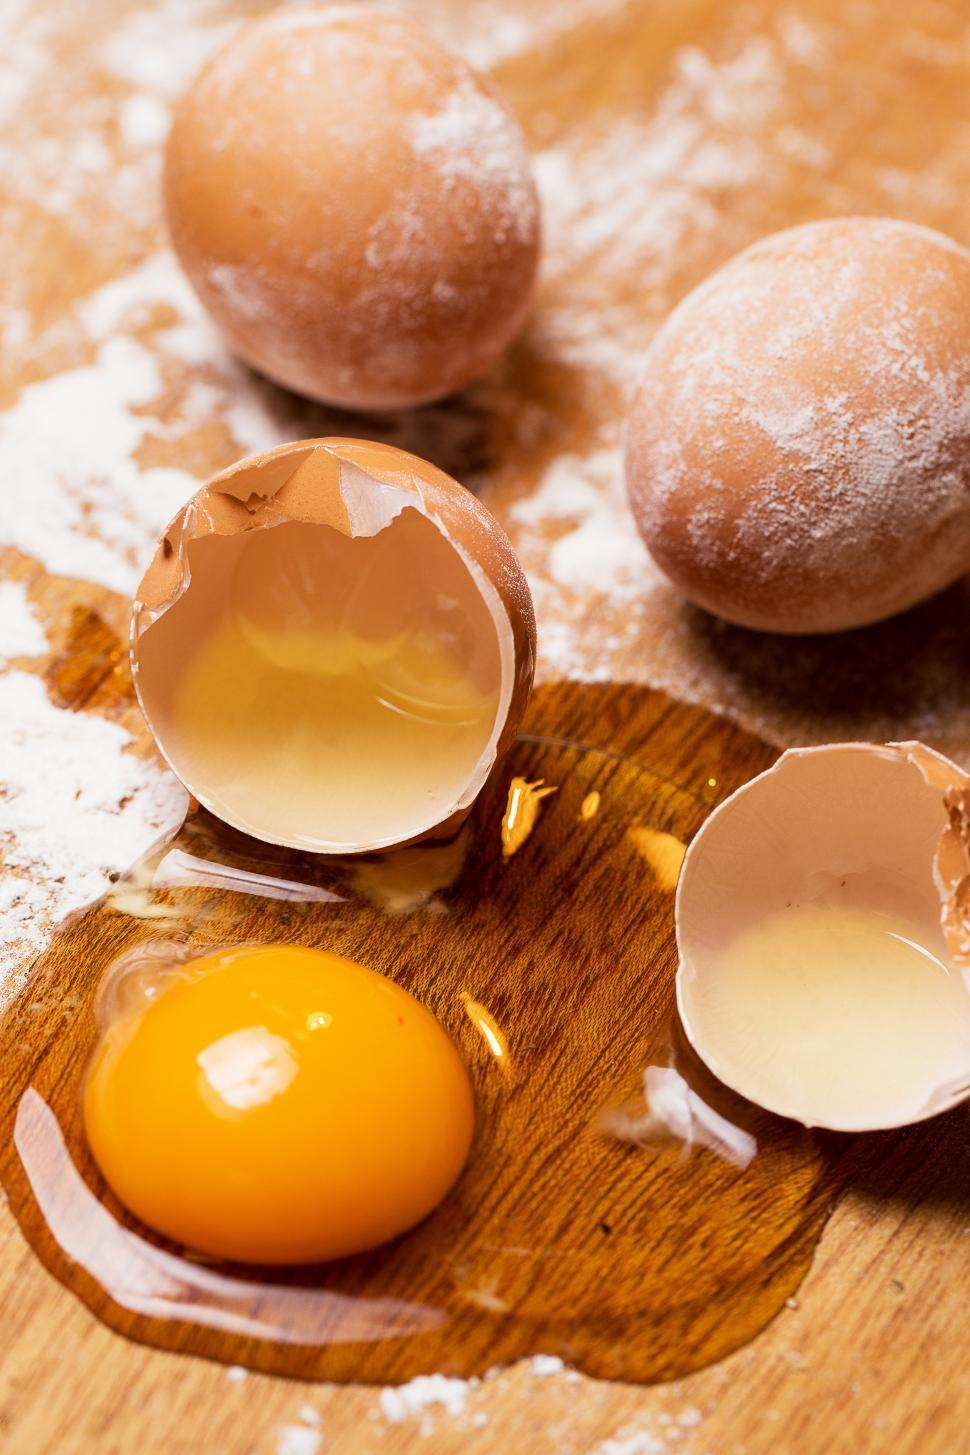 Download Free Stock Photo of Cooking, close-up. Bunch of eggs in the flour